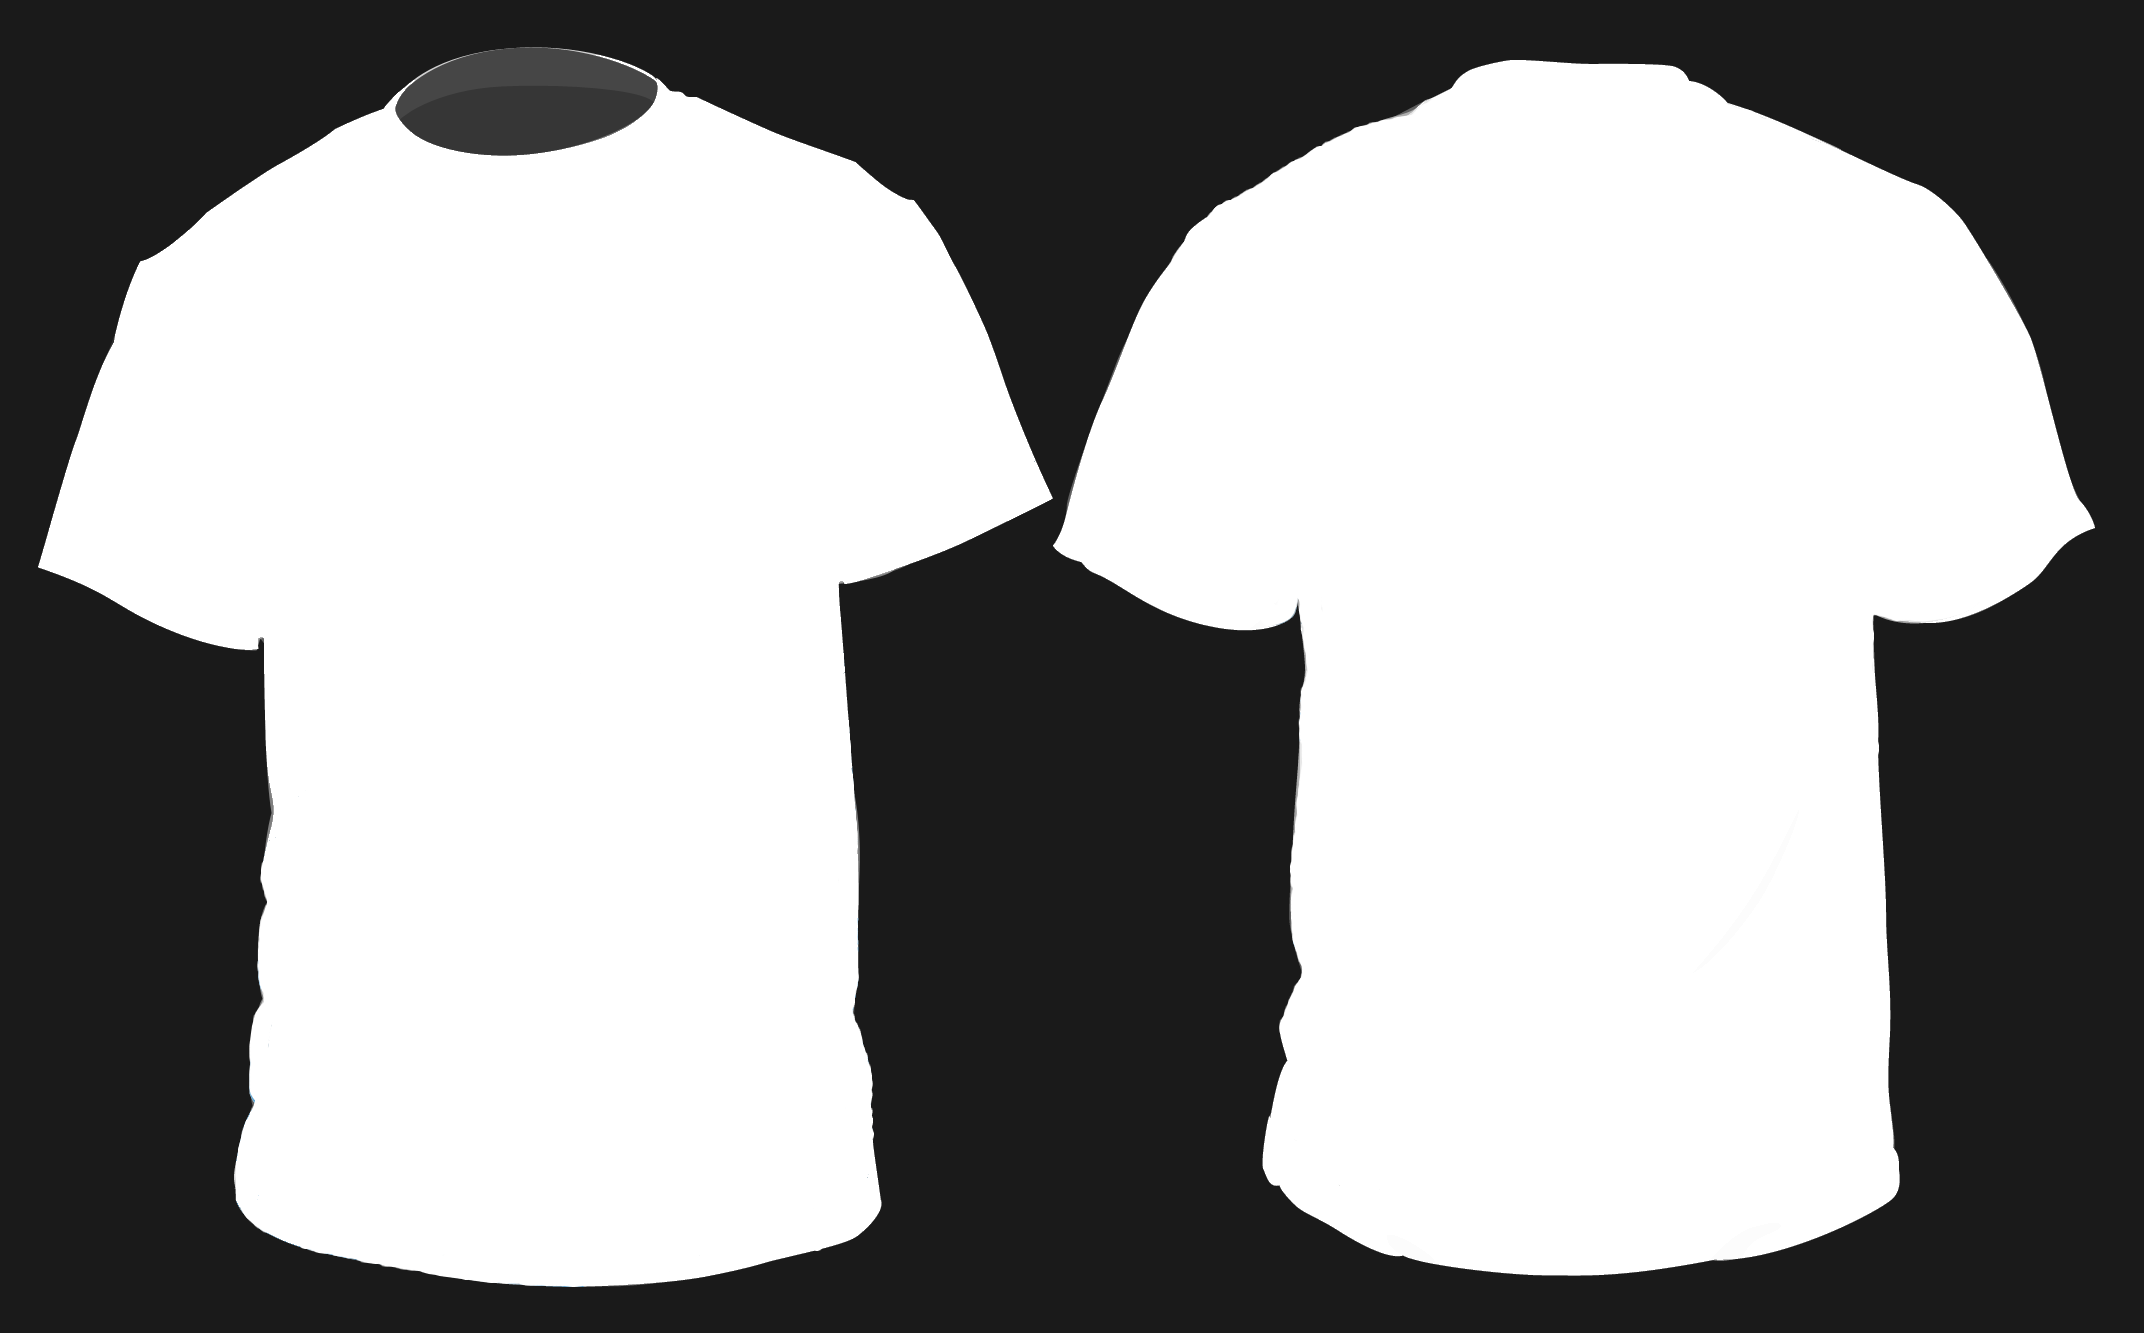 Blank T Shirt Png image #3025